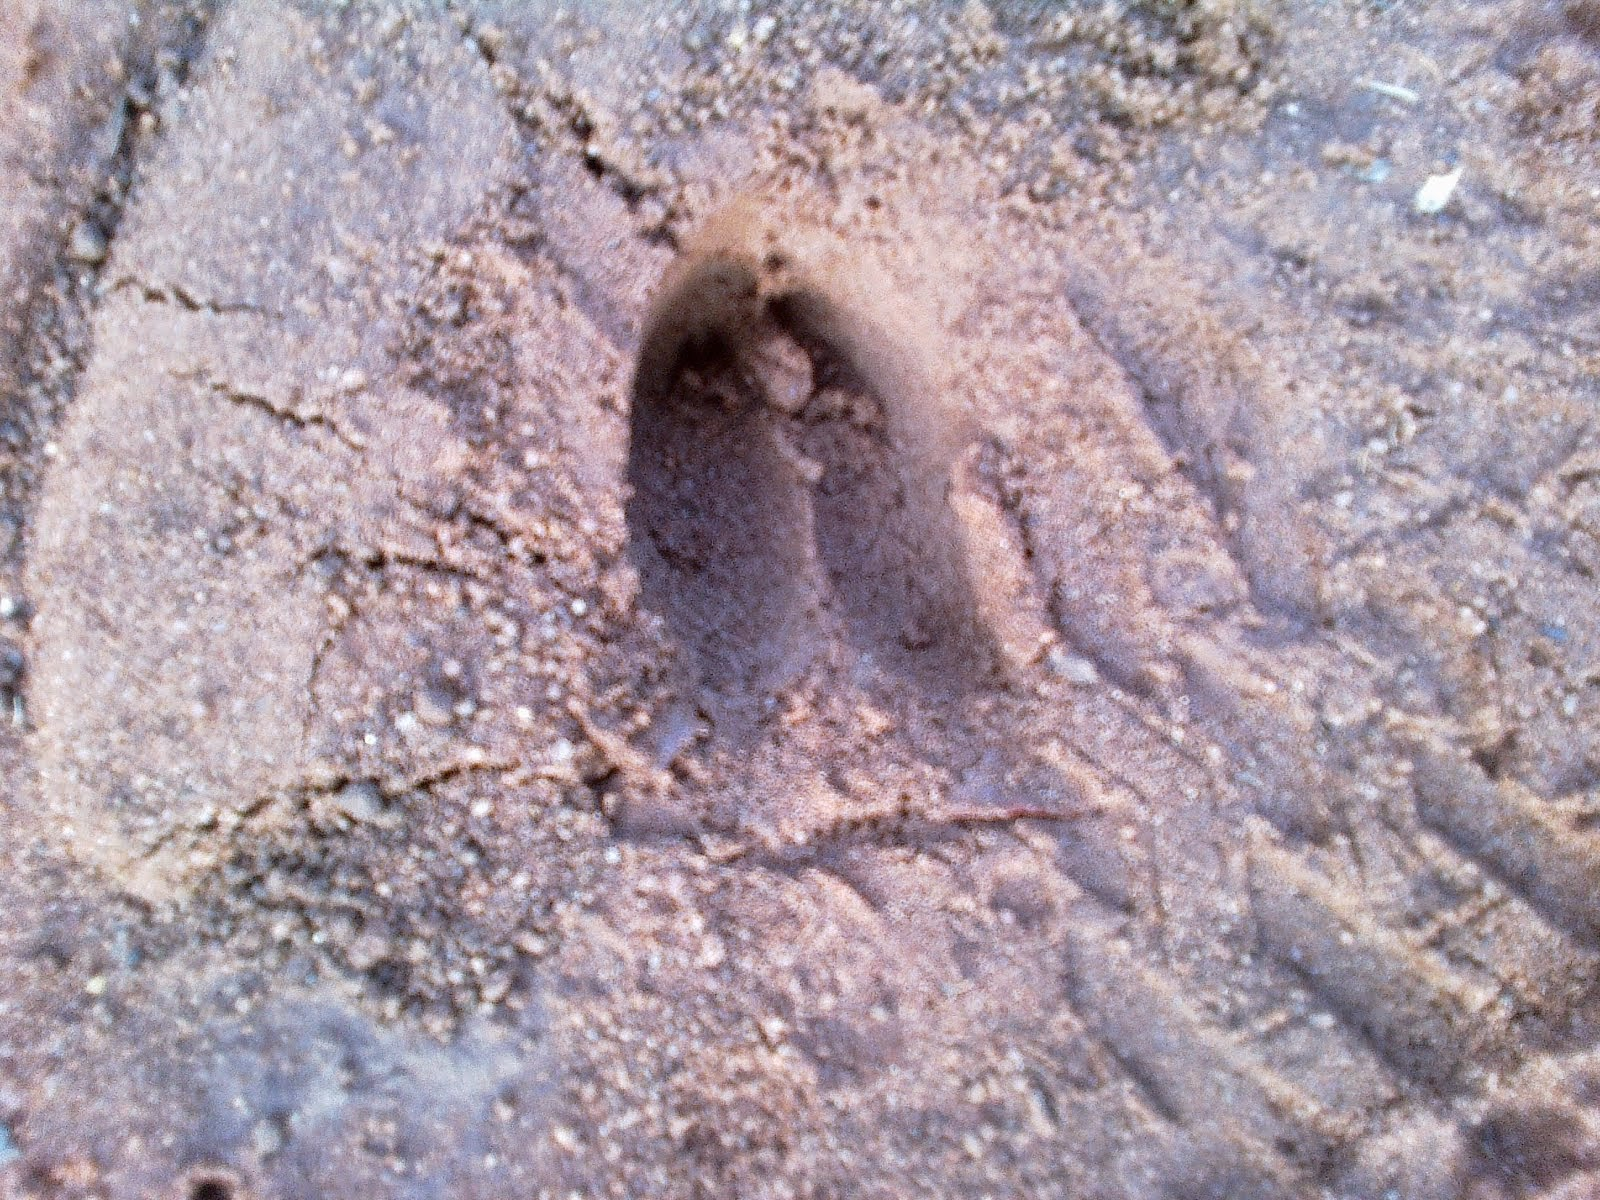 Foot Print of Bason